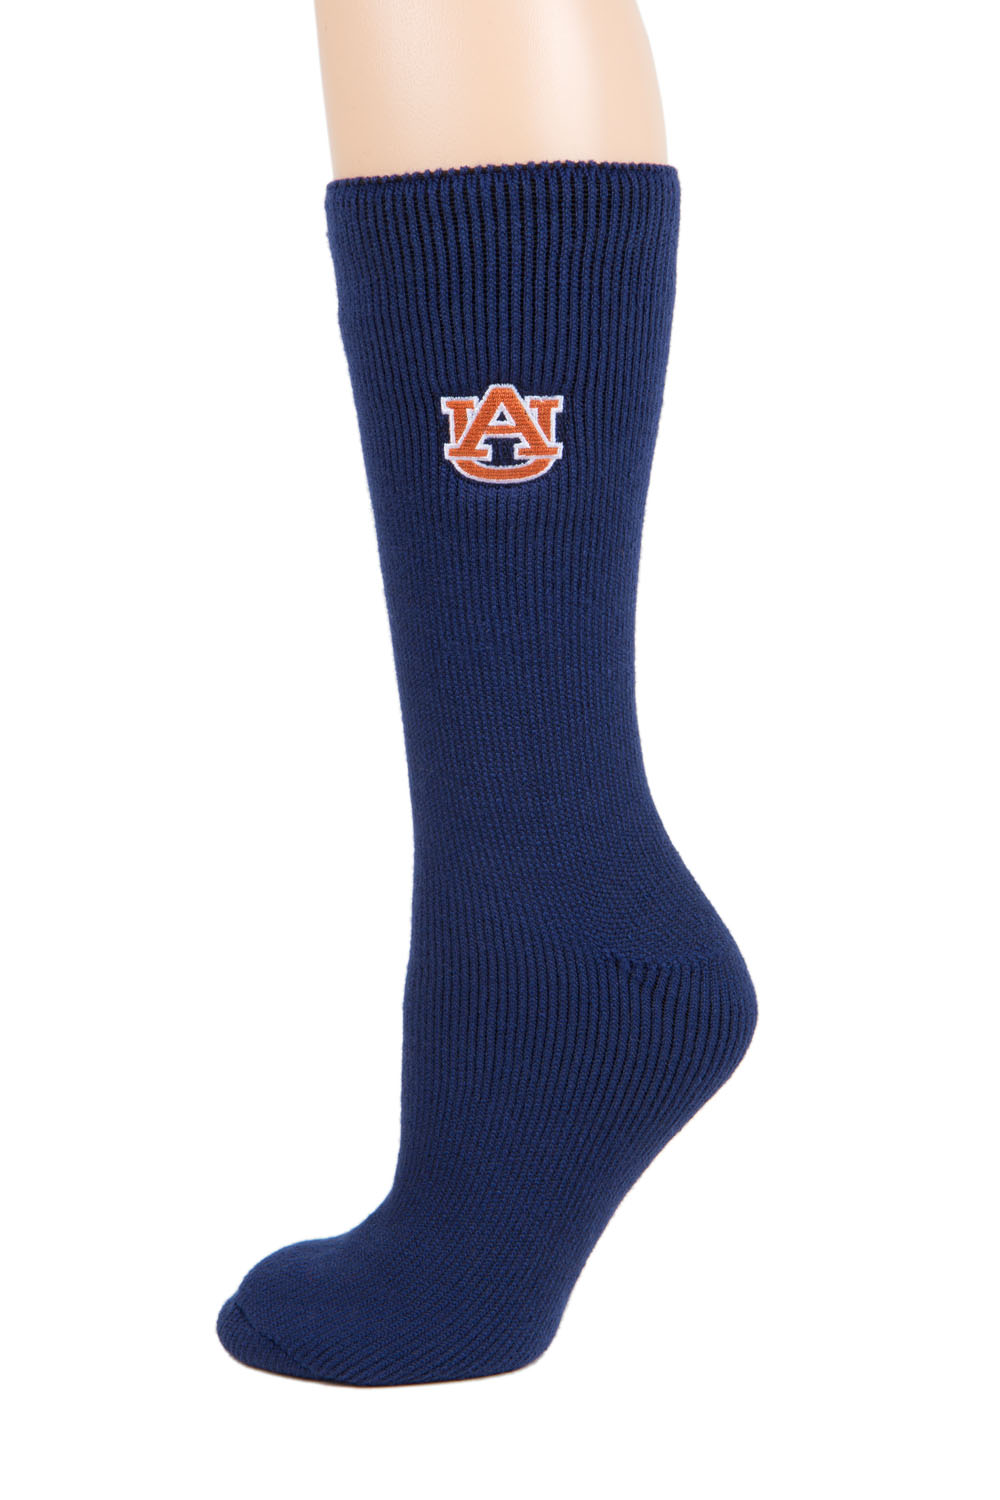 Auburn Tigers Navy Thermal Sock by Donegal Bay